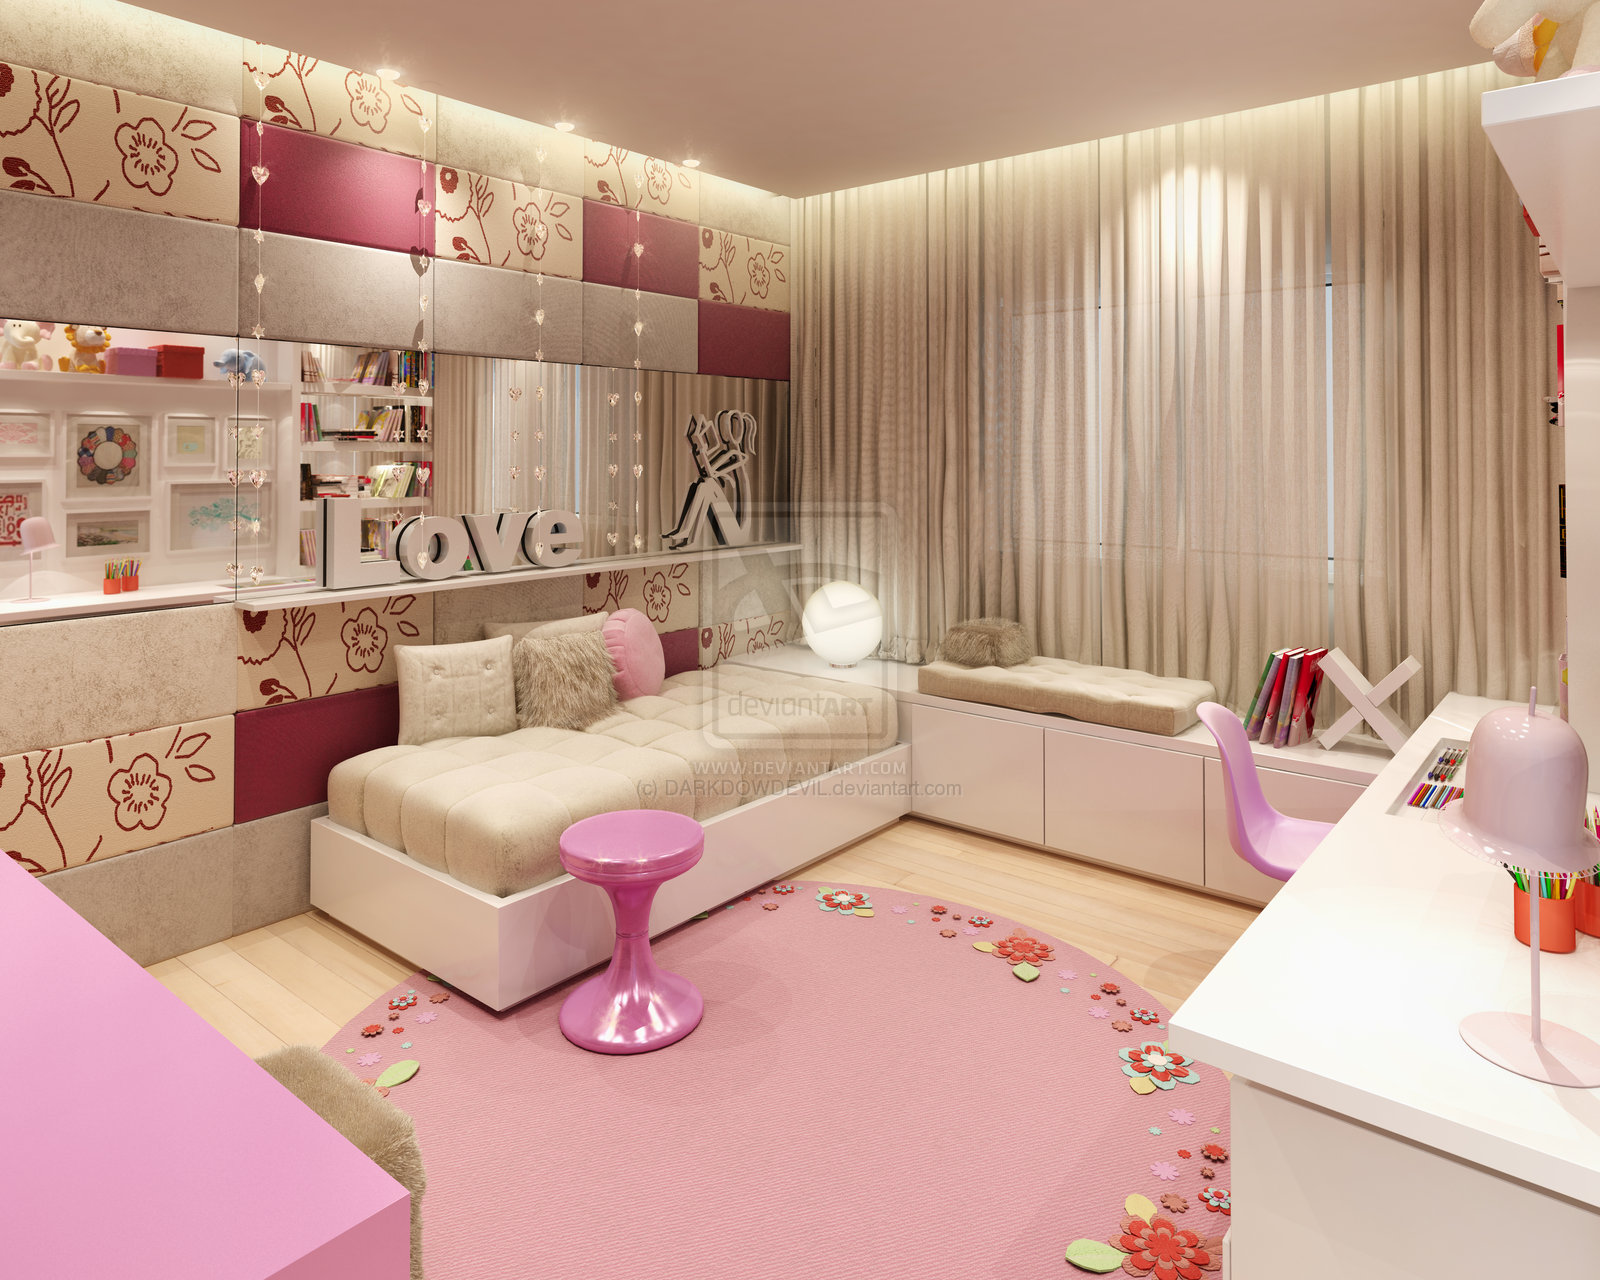 Best Home Spruce up Your Girls Bedroom Decorating Ideas with Pink ...